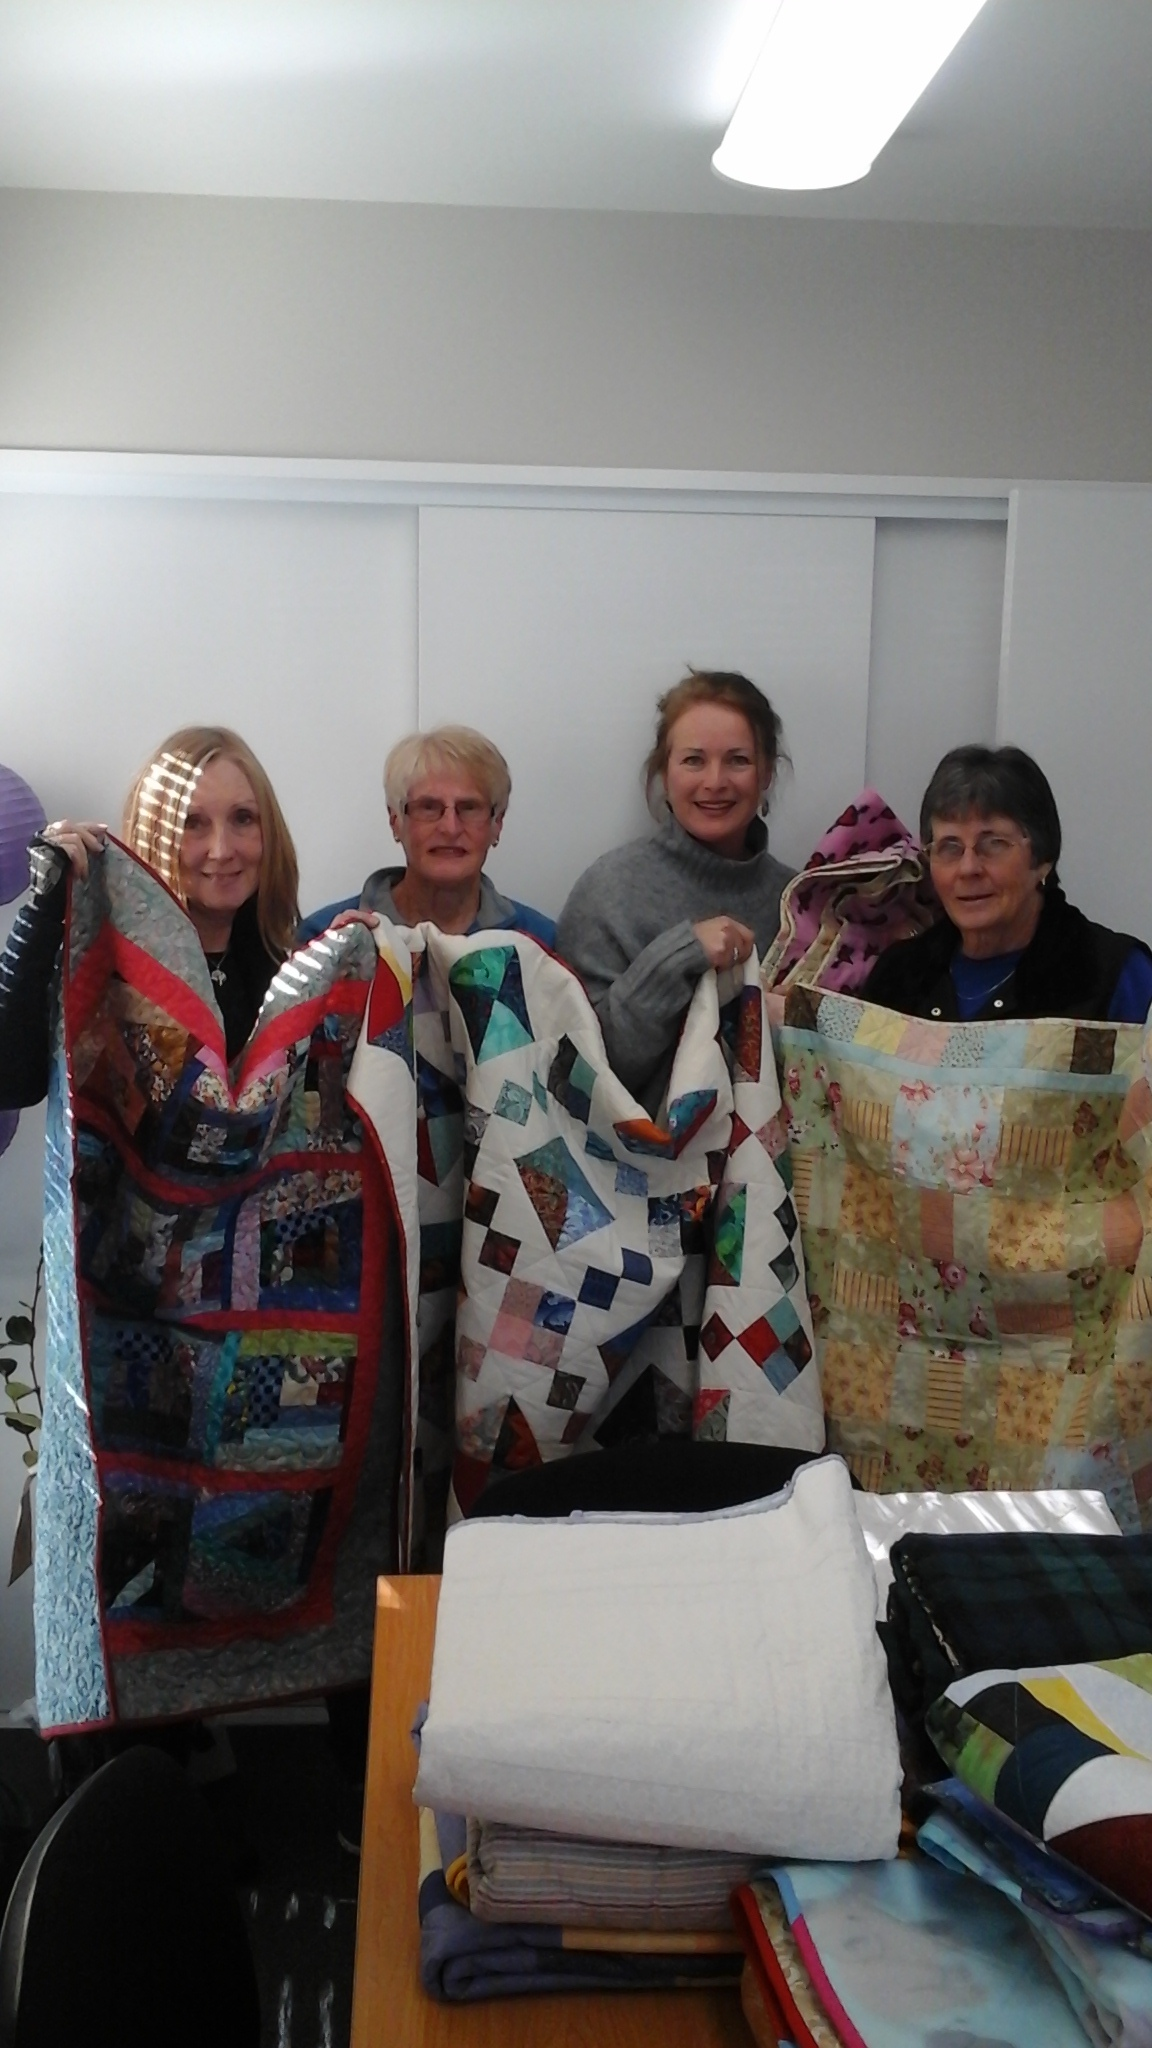 """From left Susan Arrowsmith (Aged Concern), June Mannix (NQG ), Marrit Walstra-Russell (Aged Concern), and Leone Burborough (NQG). """"Leone and June on behalf of the NQG donated a number of absolutely stunning quilts in a range of sizes to be passed on to older people in need."""""""